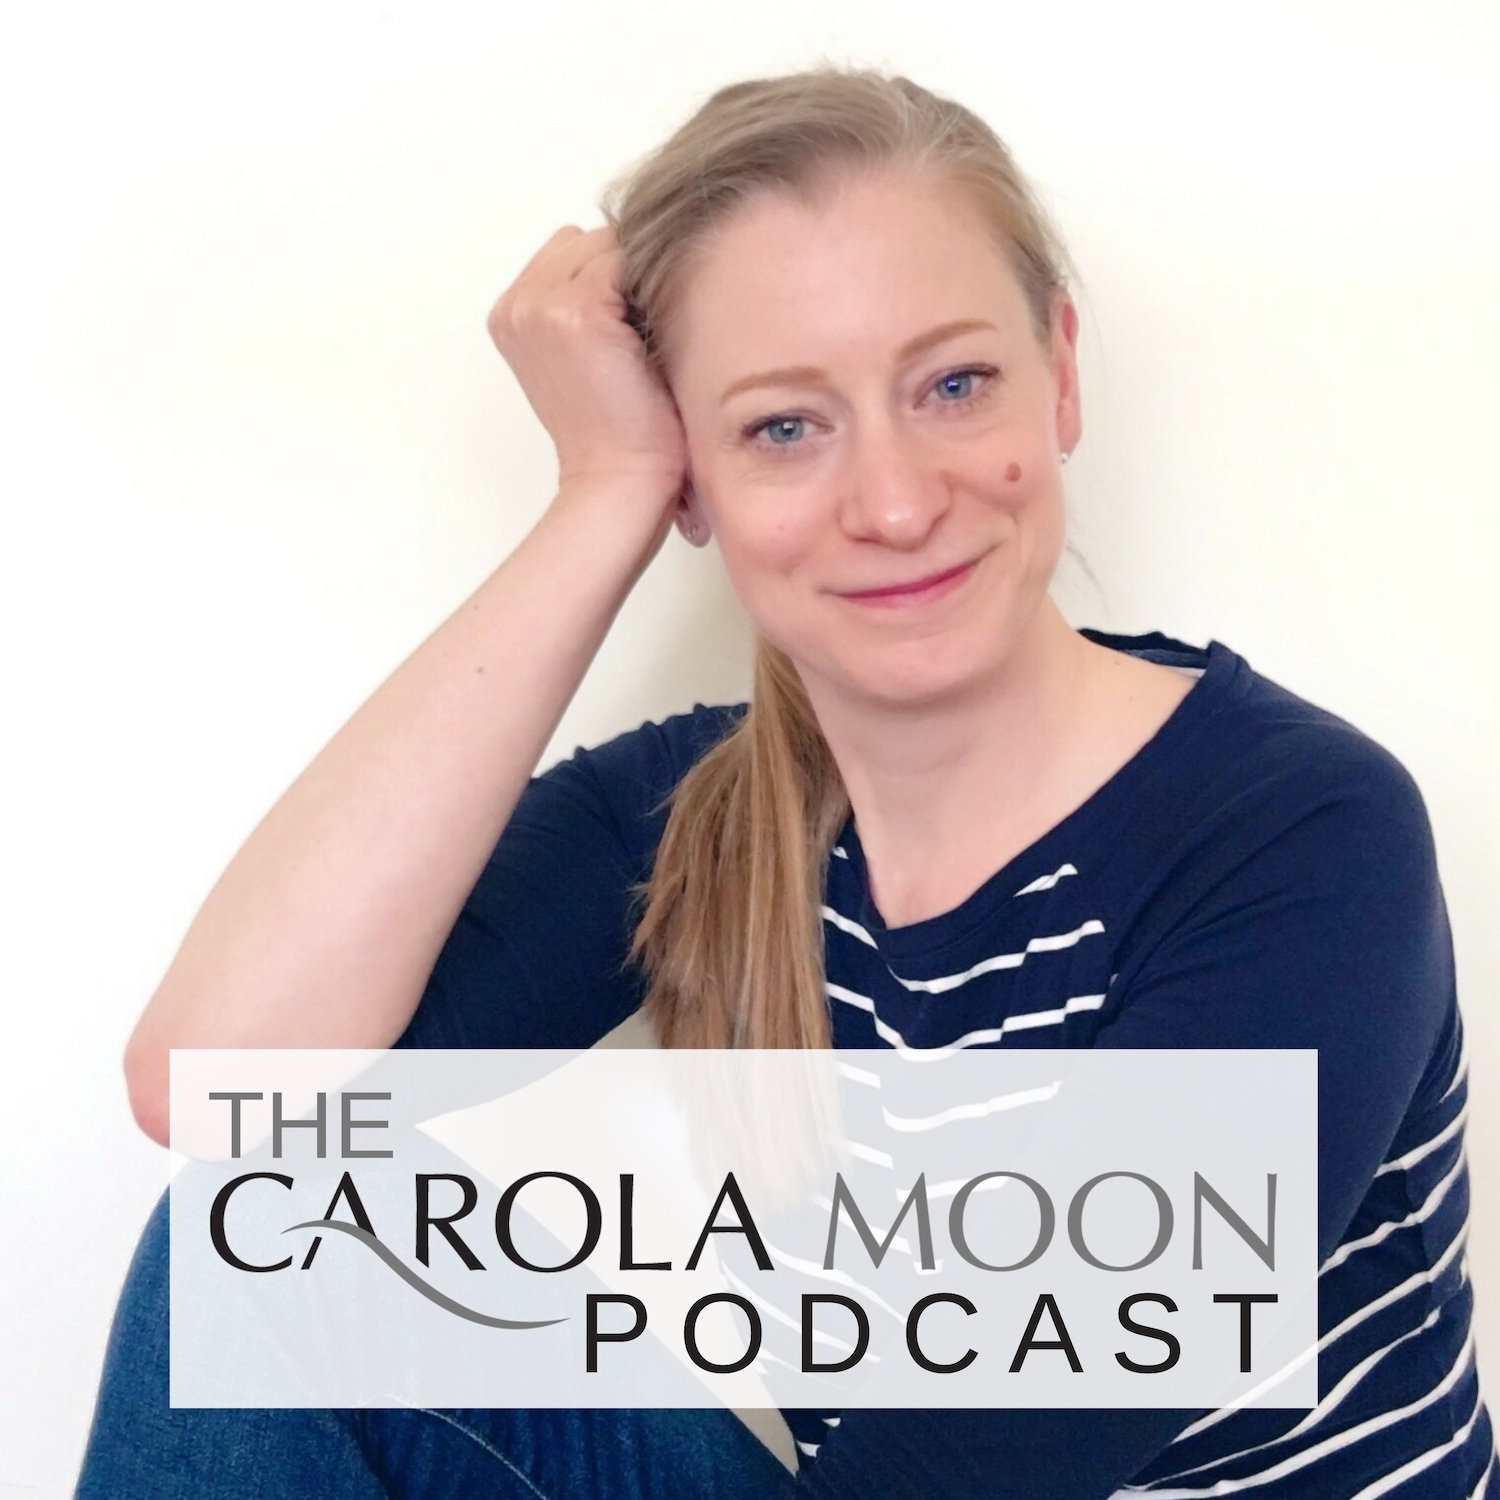 The Carola Moon Podcast – Own Your Awesome